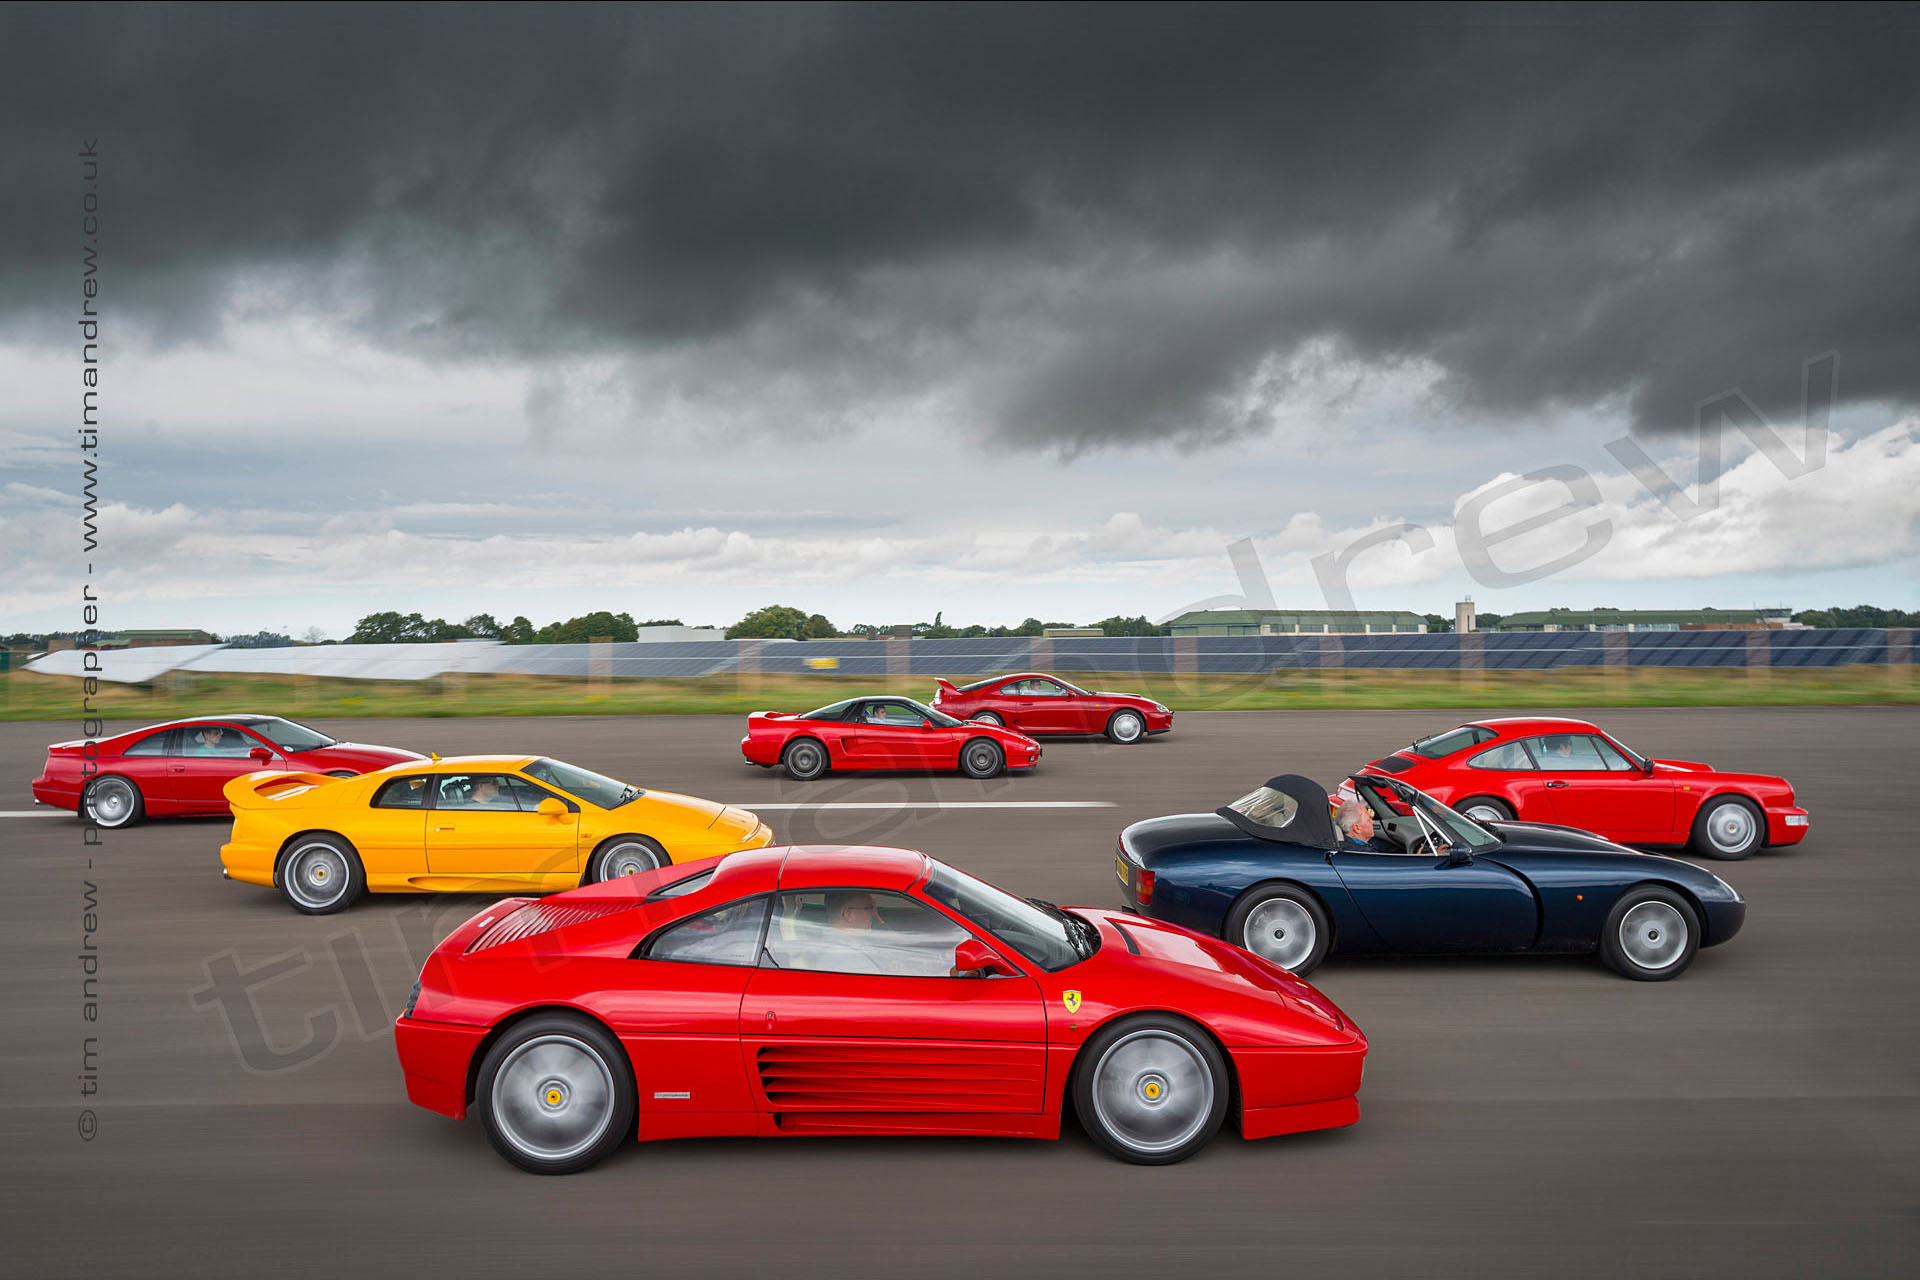 1990s Supercars at Scottow Enterprise Park shot by Tim Andrew